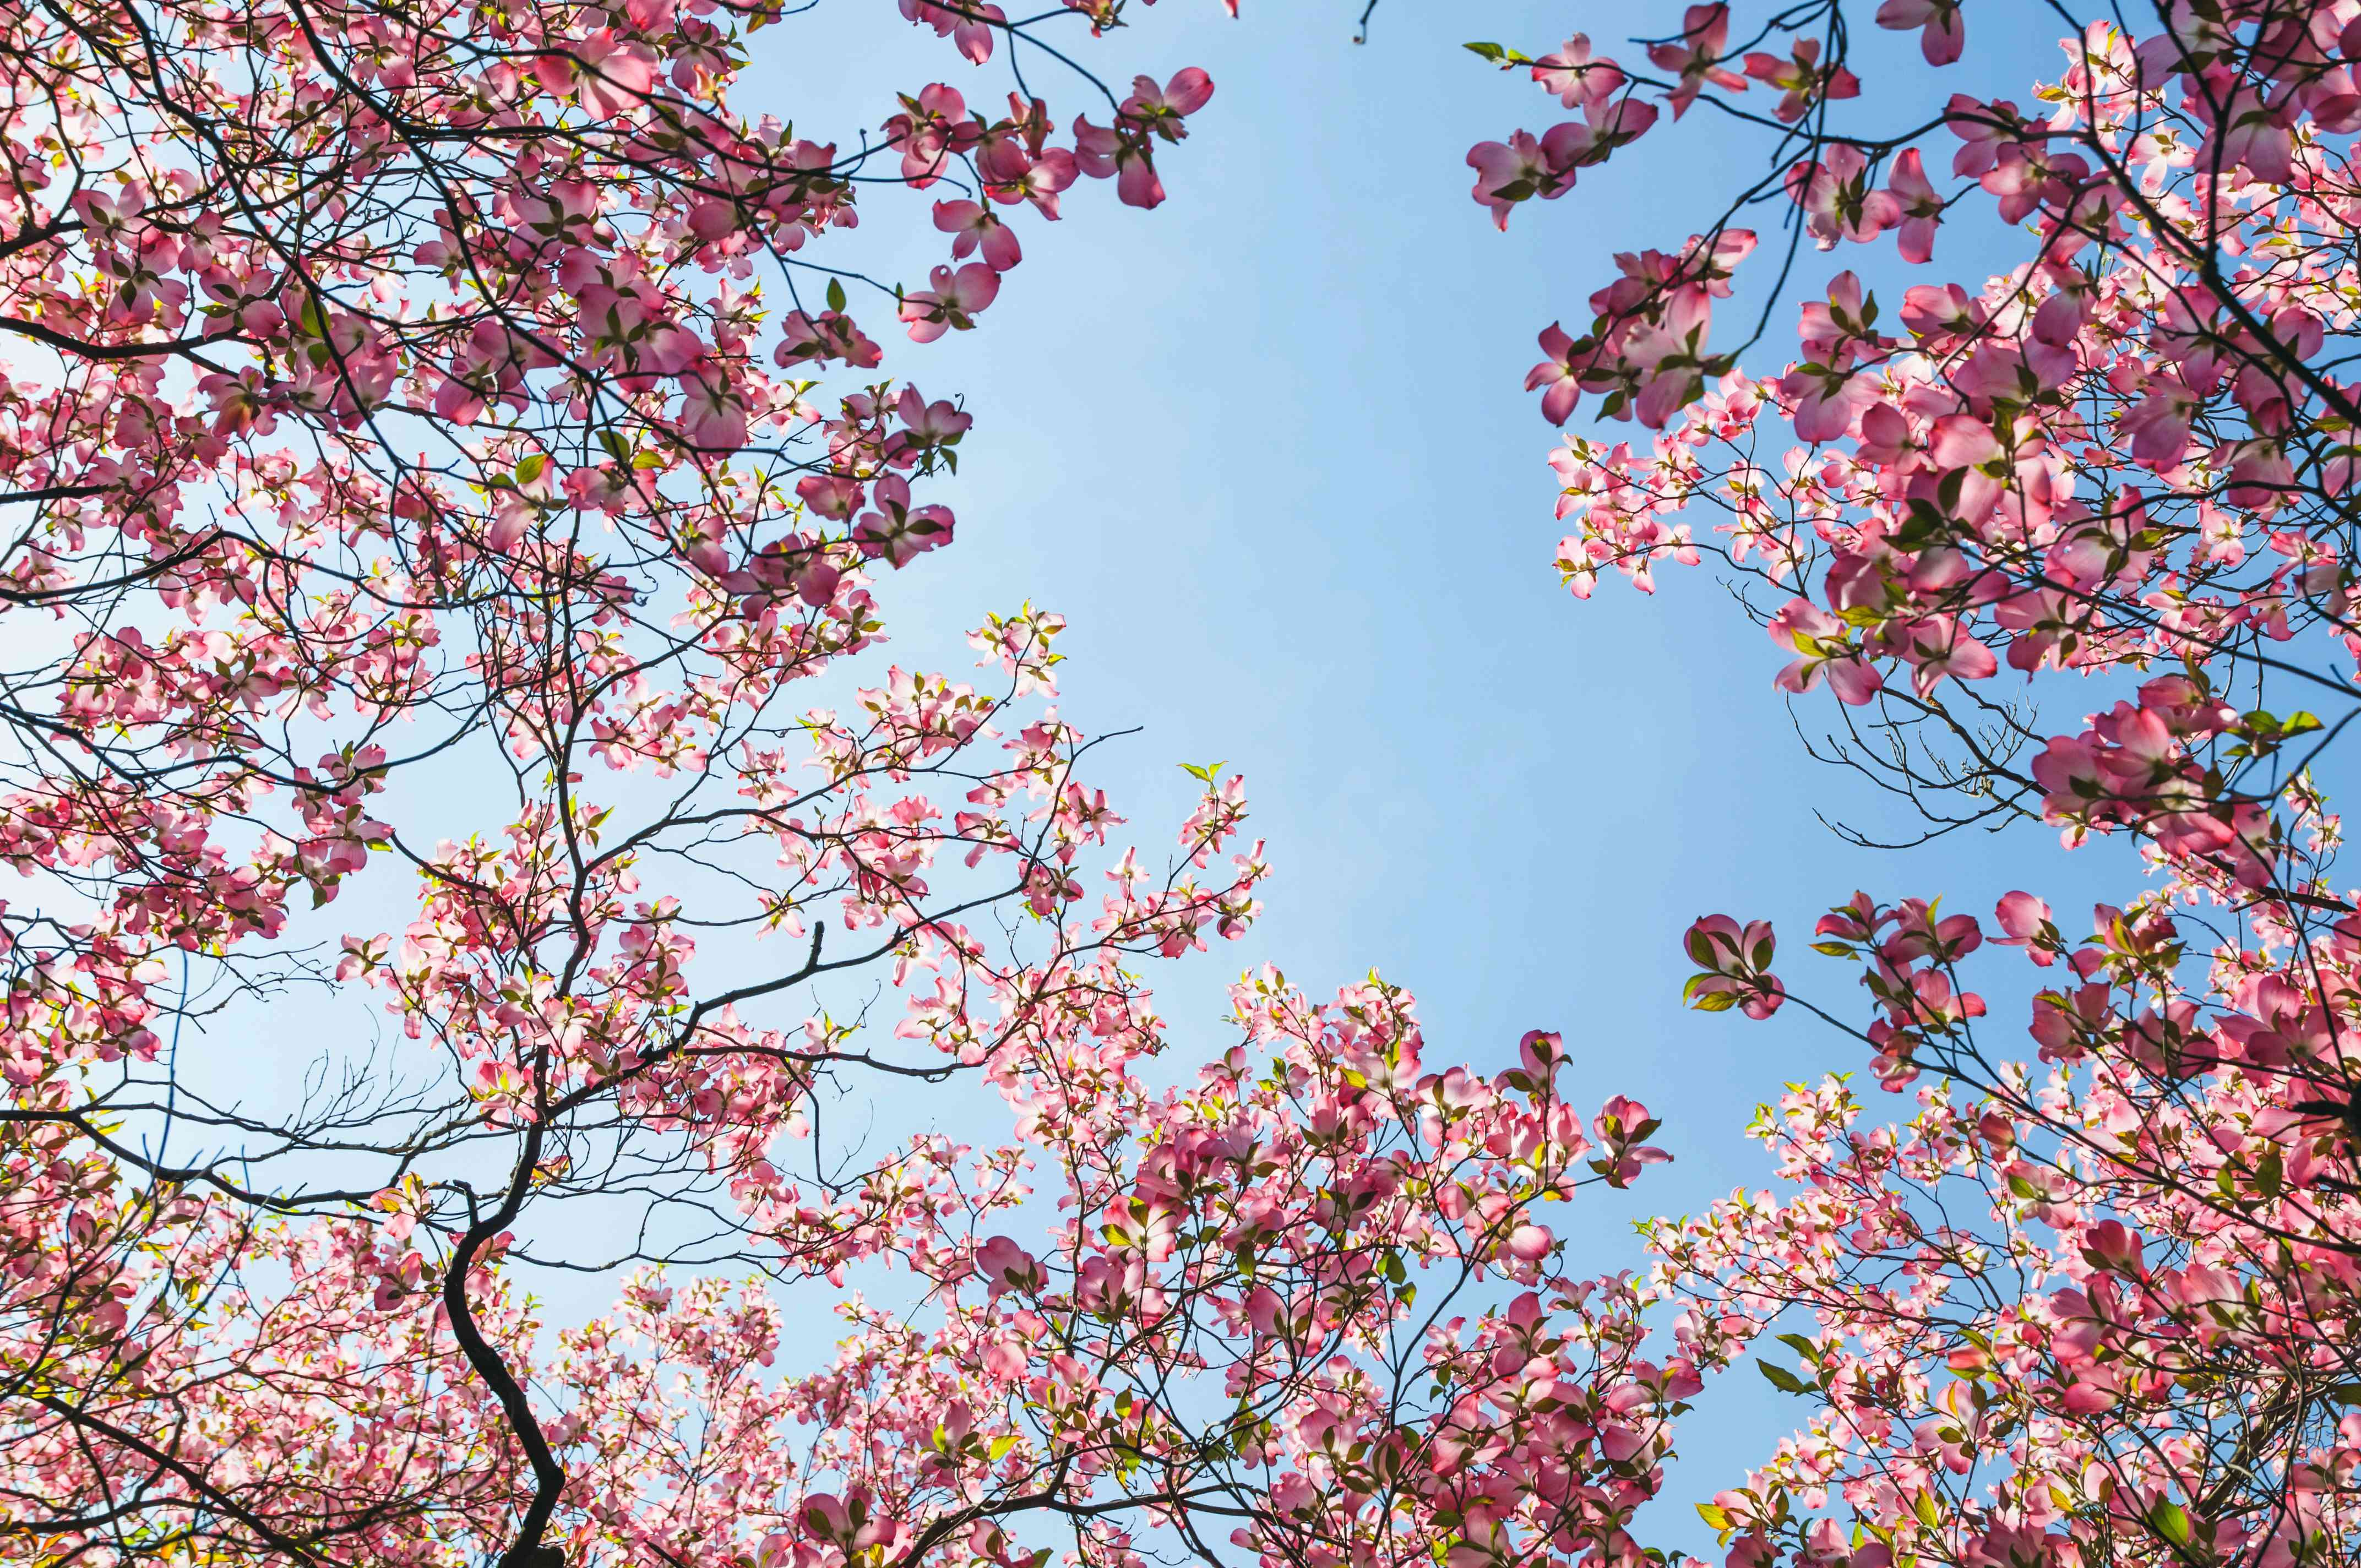 Flowering dogwood branches with pink flowers against clear blue sky